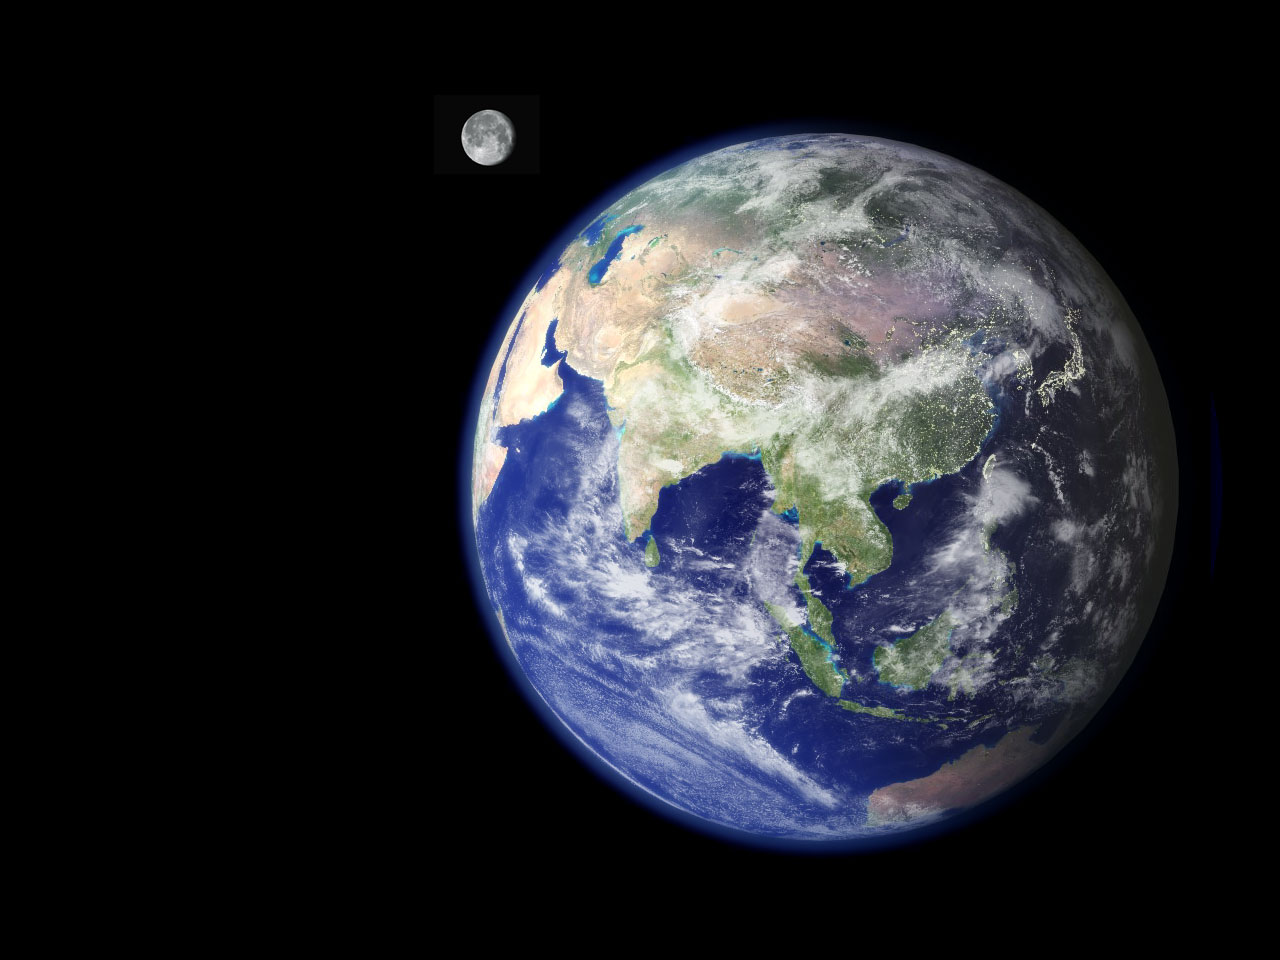 Earth: description and images of the home planet